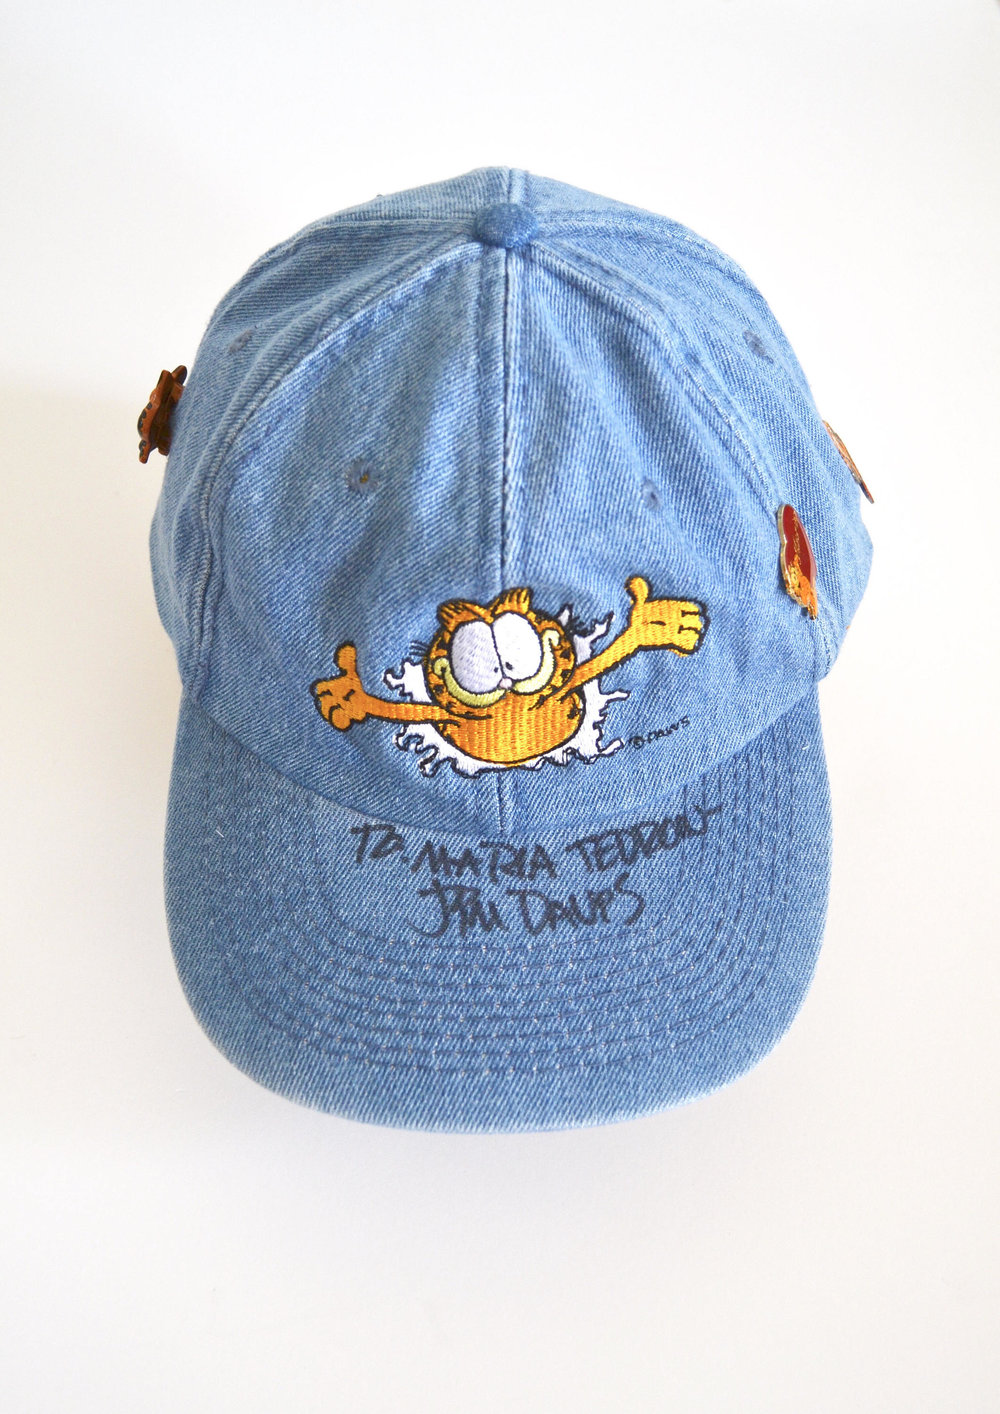 Garfield Cap autographed by Jim Henson from Spaced Out Mama